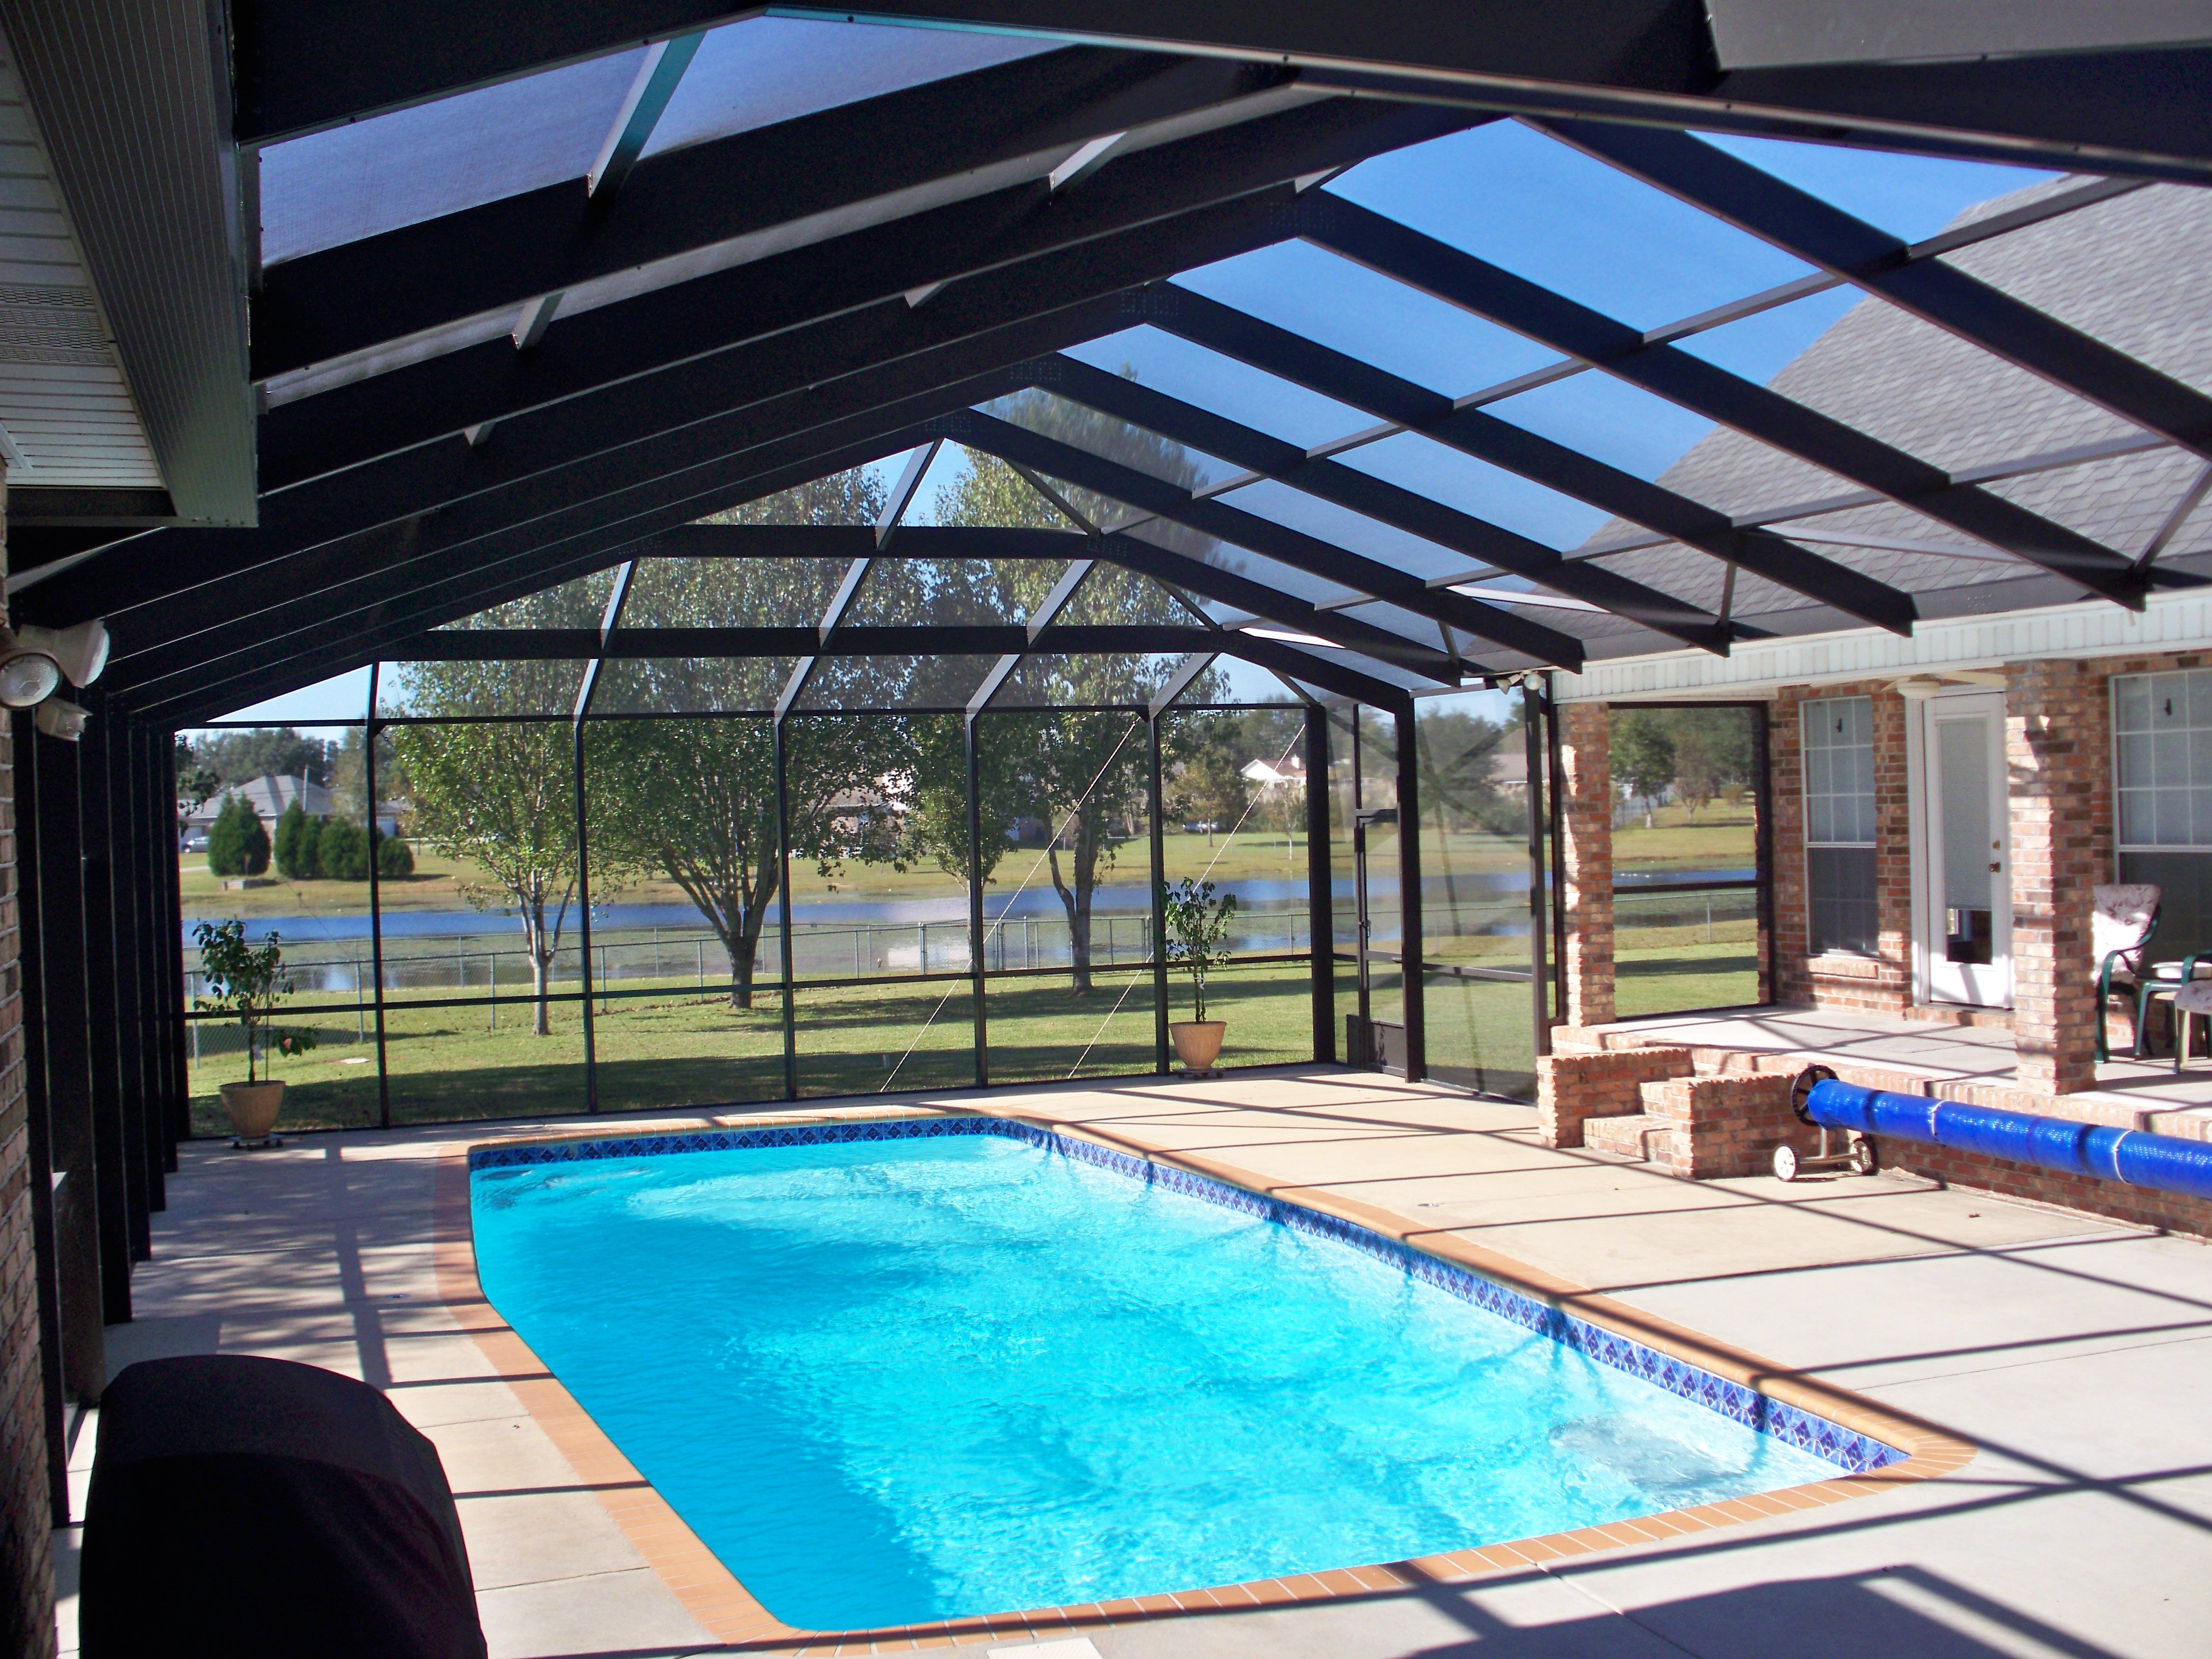 This Is A Bronze Pool Enclosure With A Gabled Roof We Installed Gnat Proof Screen To Keep The Bugs Out And In Island Vacation Rentals Patio Builders Pool Shed